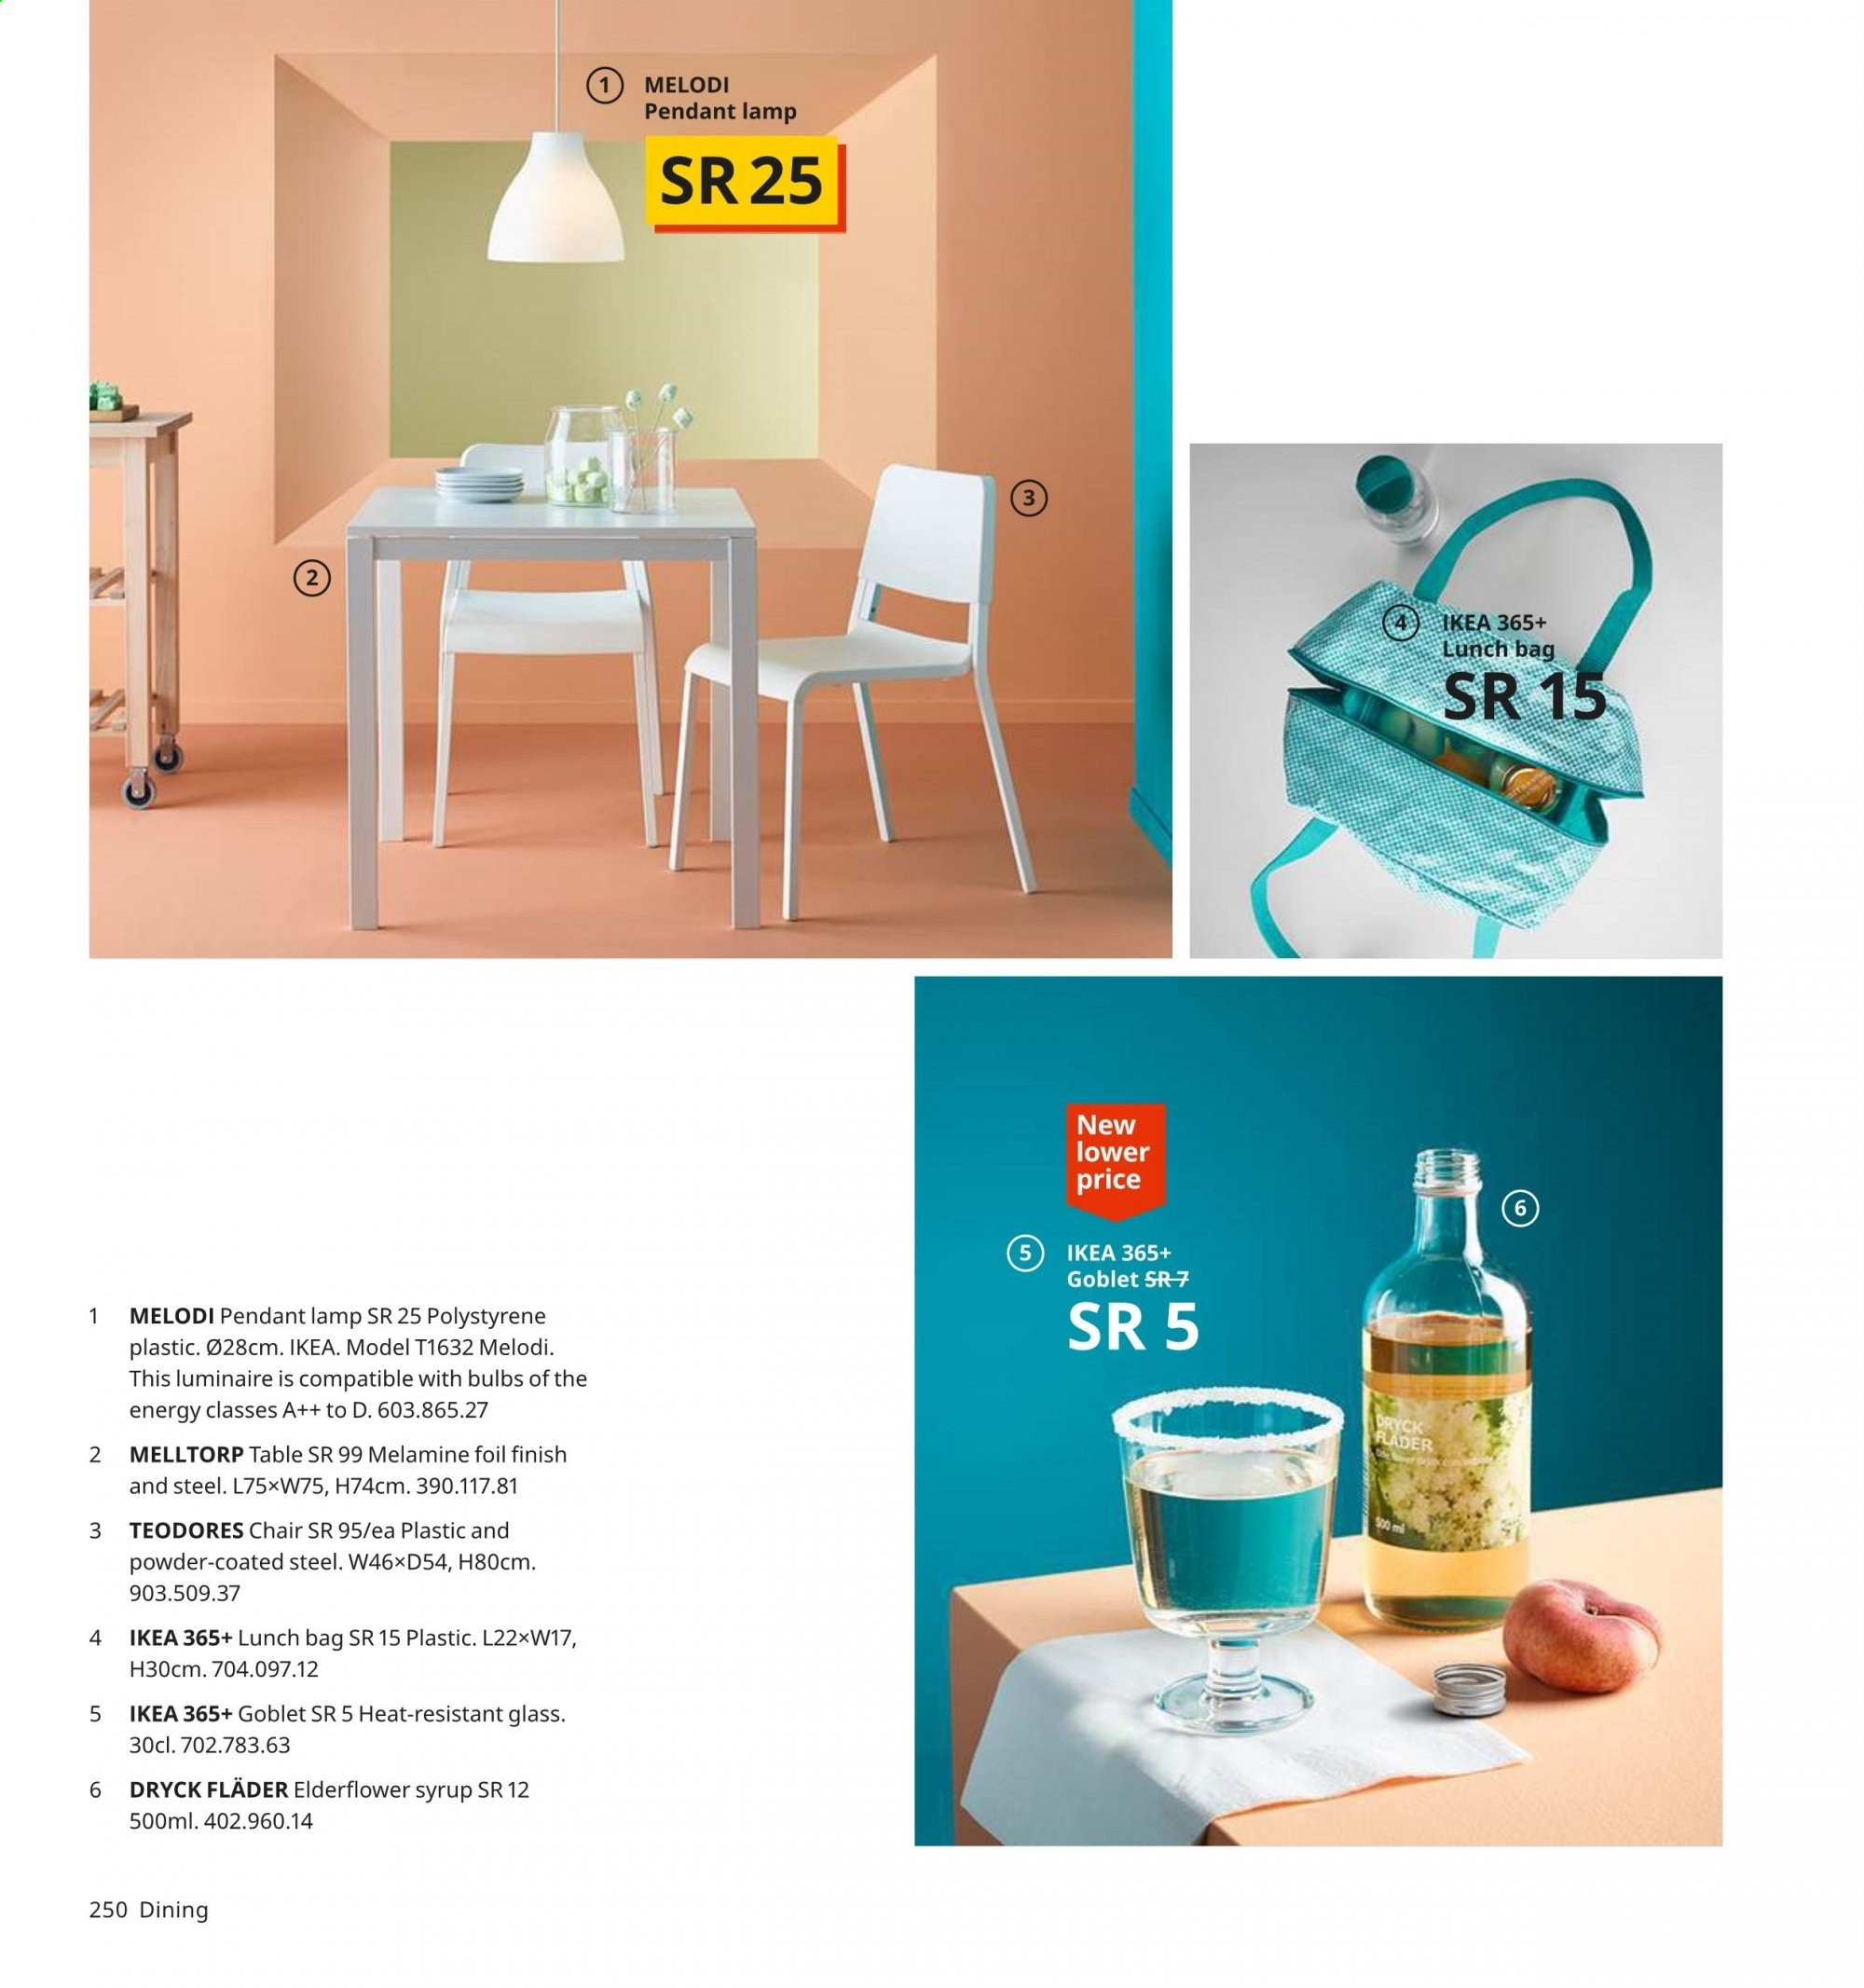 <retailer> - <MM.DD.YYYY - MM.DD.YYYY> - Sales products - ,<products from offers>. Page 250.